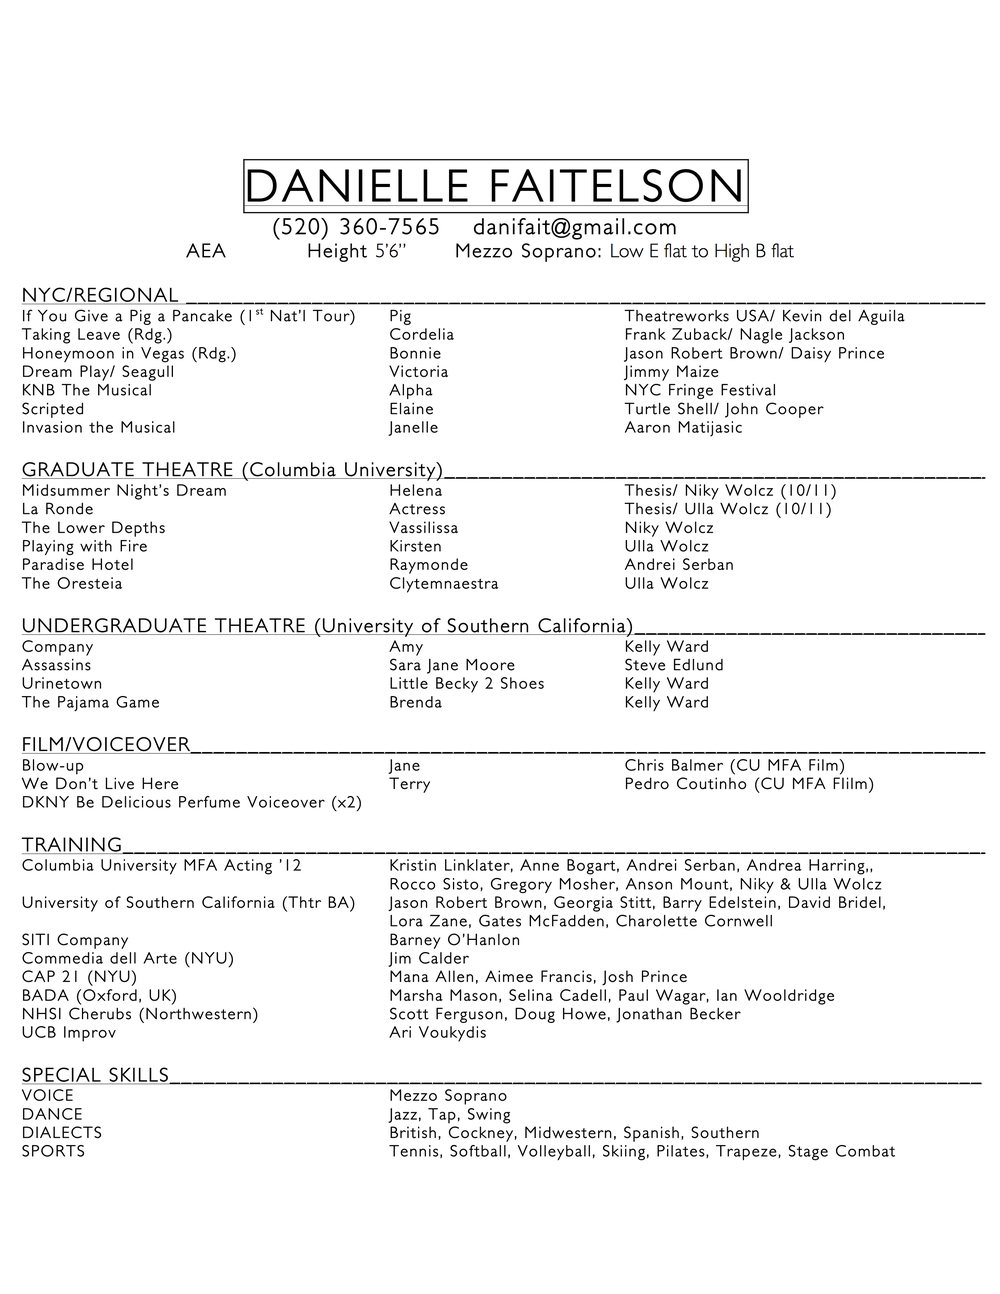 danielle faitelson columbia actors graduate